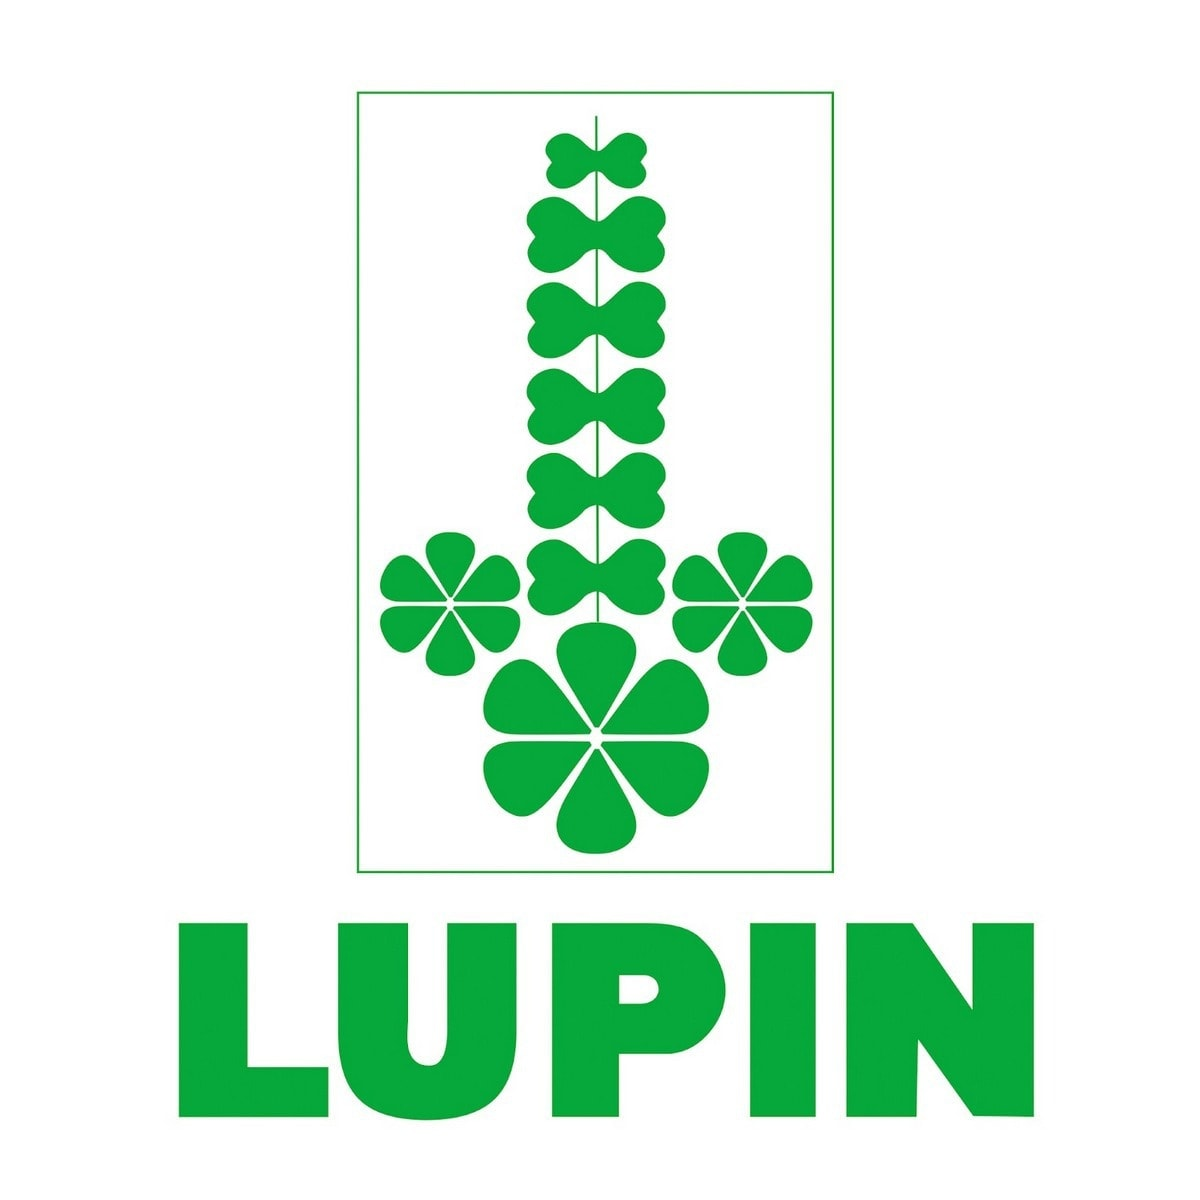 Marketing Mix Of Lupin – Lupin Marketing Mix